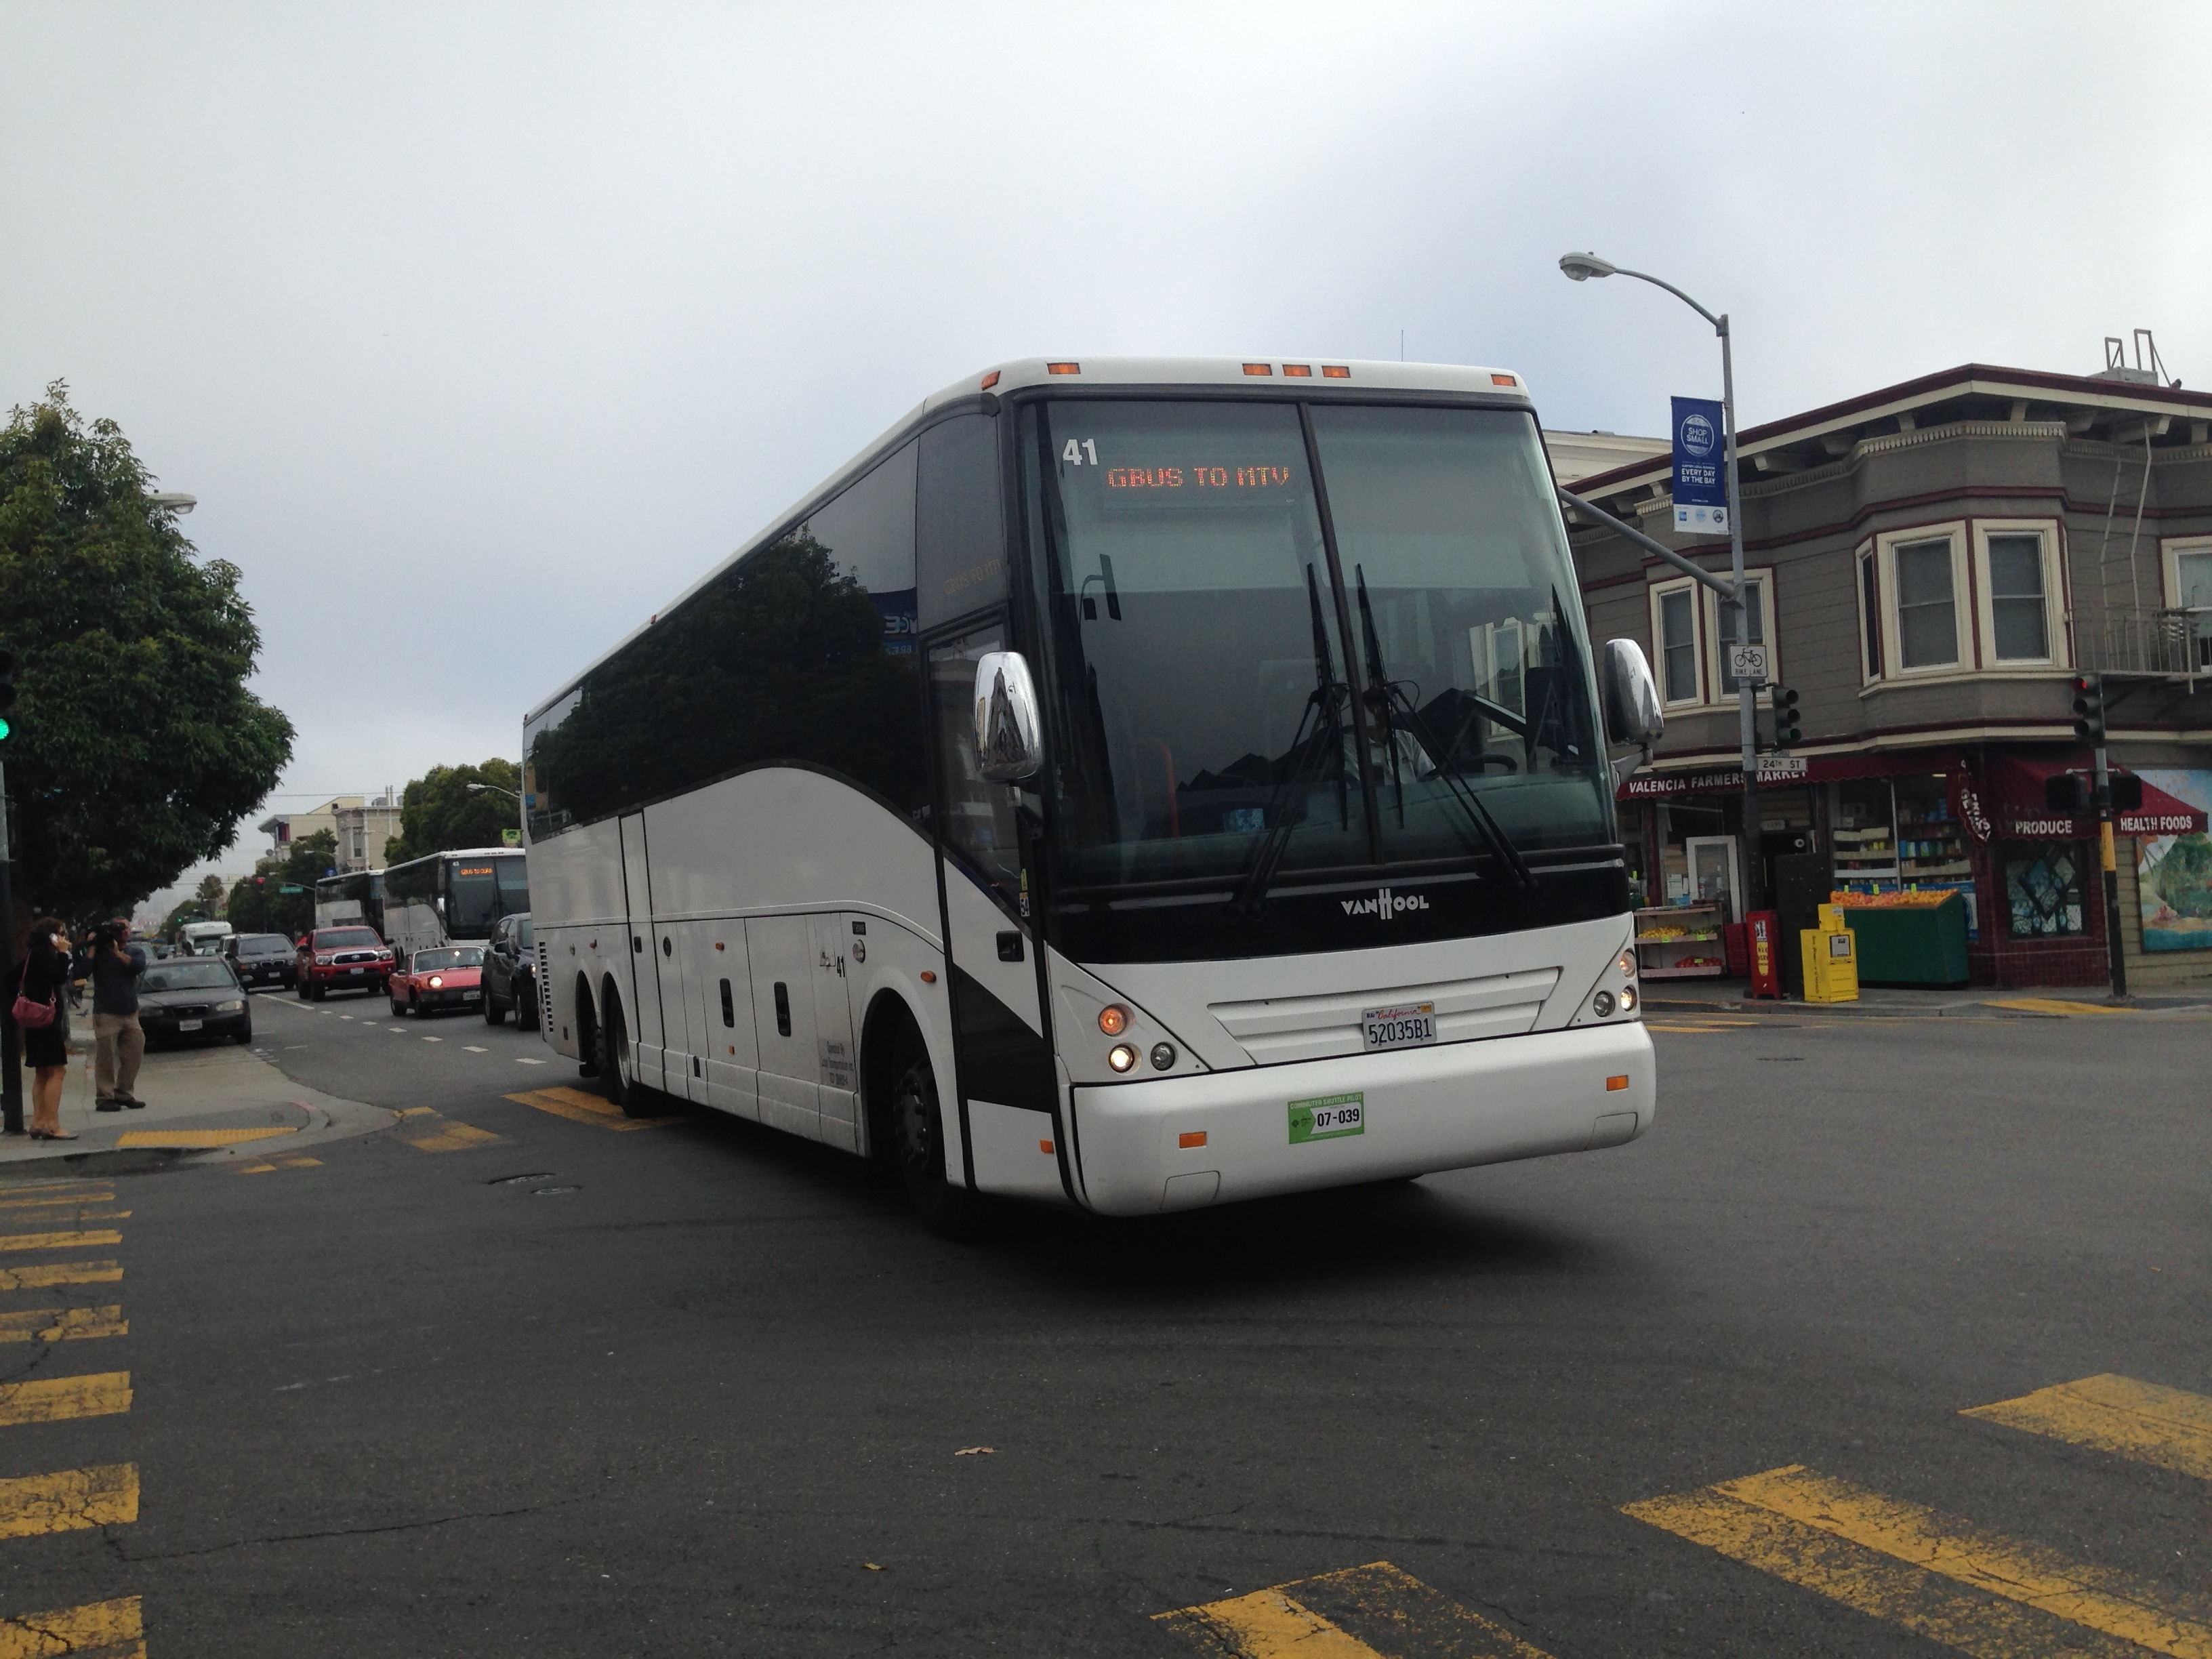 A commuter shuttle headed to Google's Mountain View campus pulls into a pre-approved Muni stop at 24th St and Valencia.